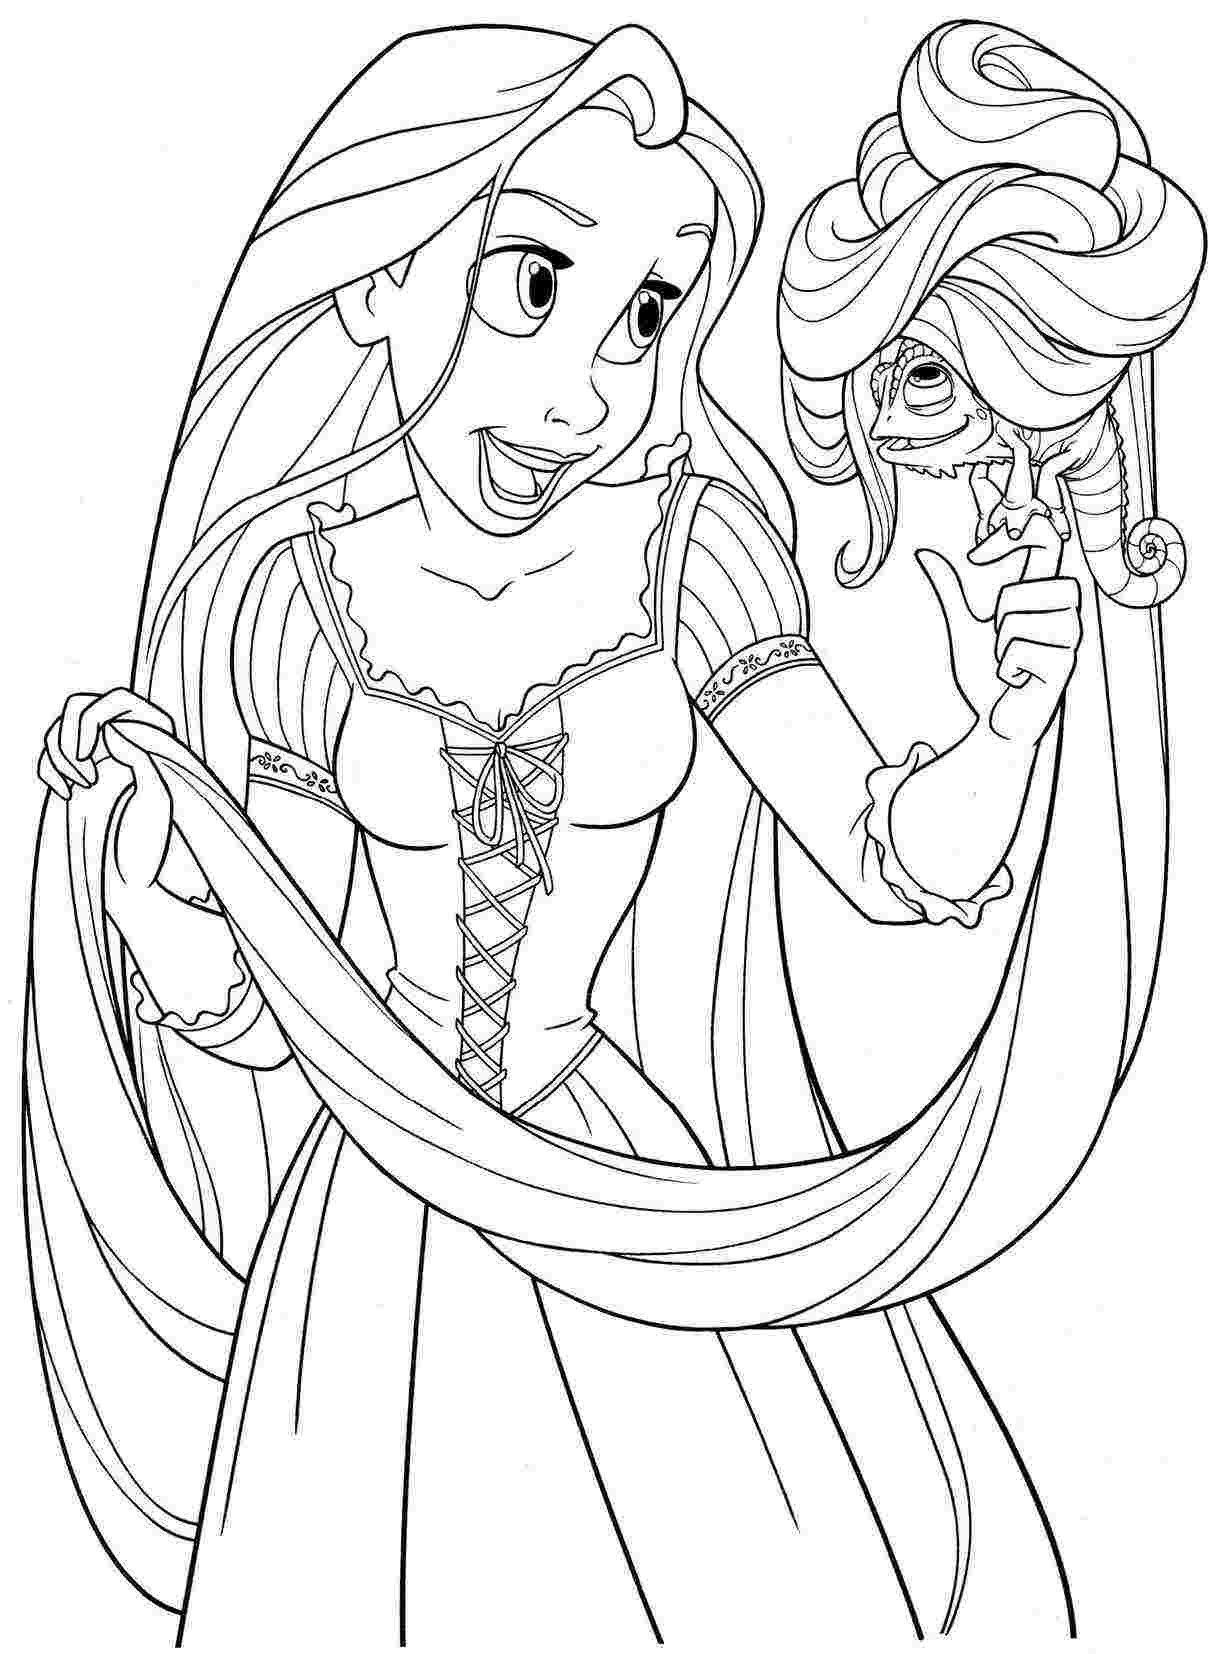 All Disney Princess Coloring Pages Coloring Pages Coloring Free Printable Disney Disney Princess Coloring Pages Rapunzel Coloring Pages Princess Coloring Pages